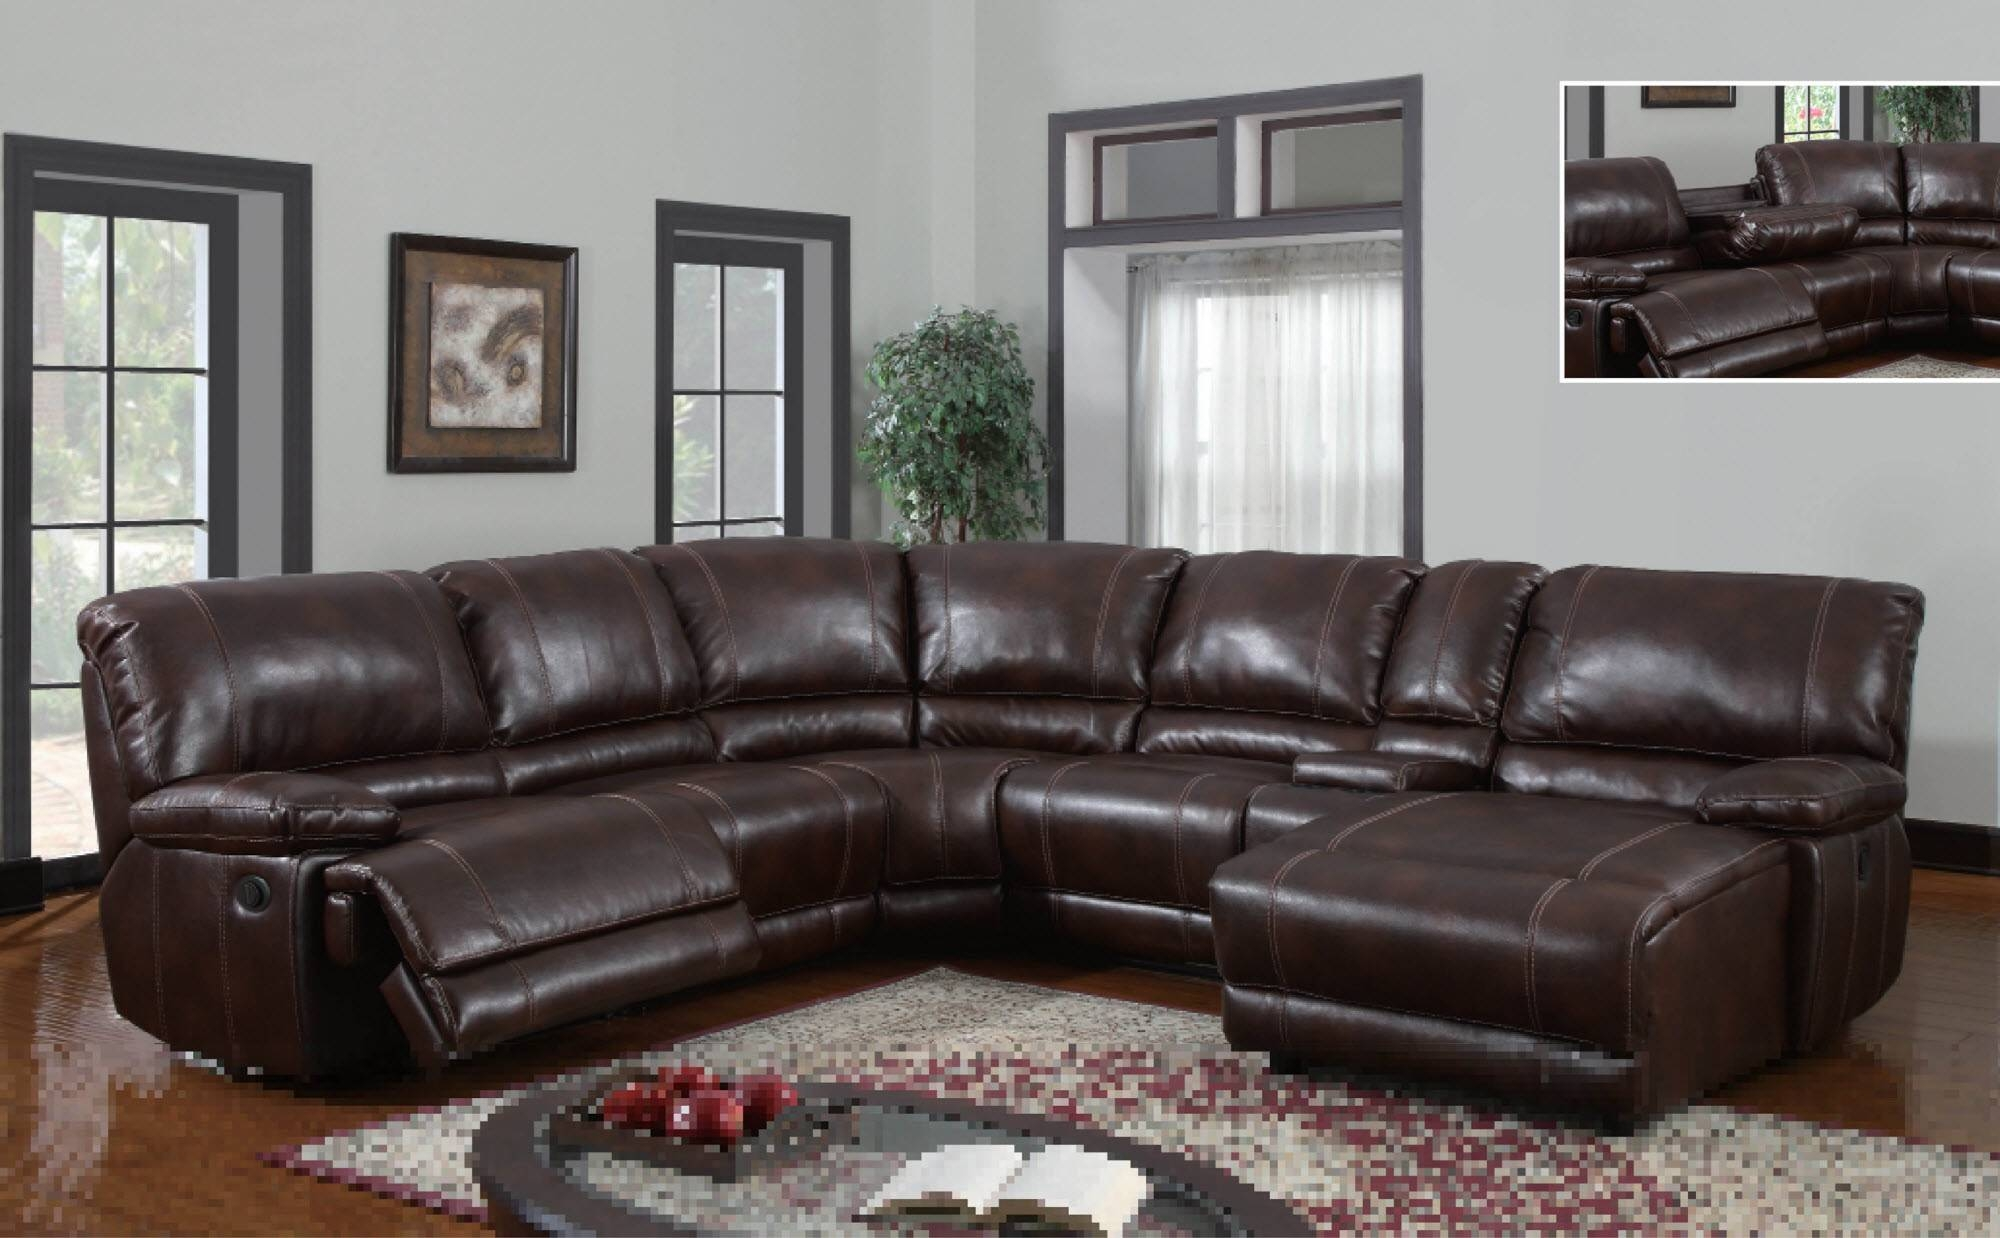 Leather Sectional Sofas With Recliners And Chaise - Cleanupflorida inside Individual Piece Sectional Sofas (Image 11 of 25)